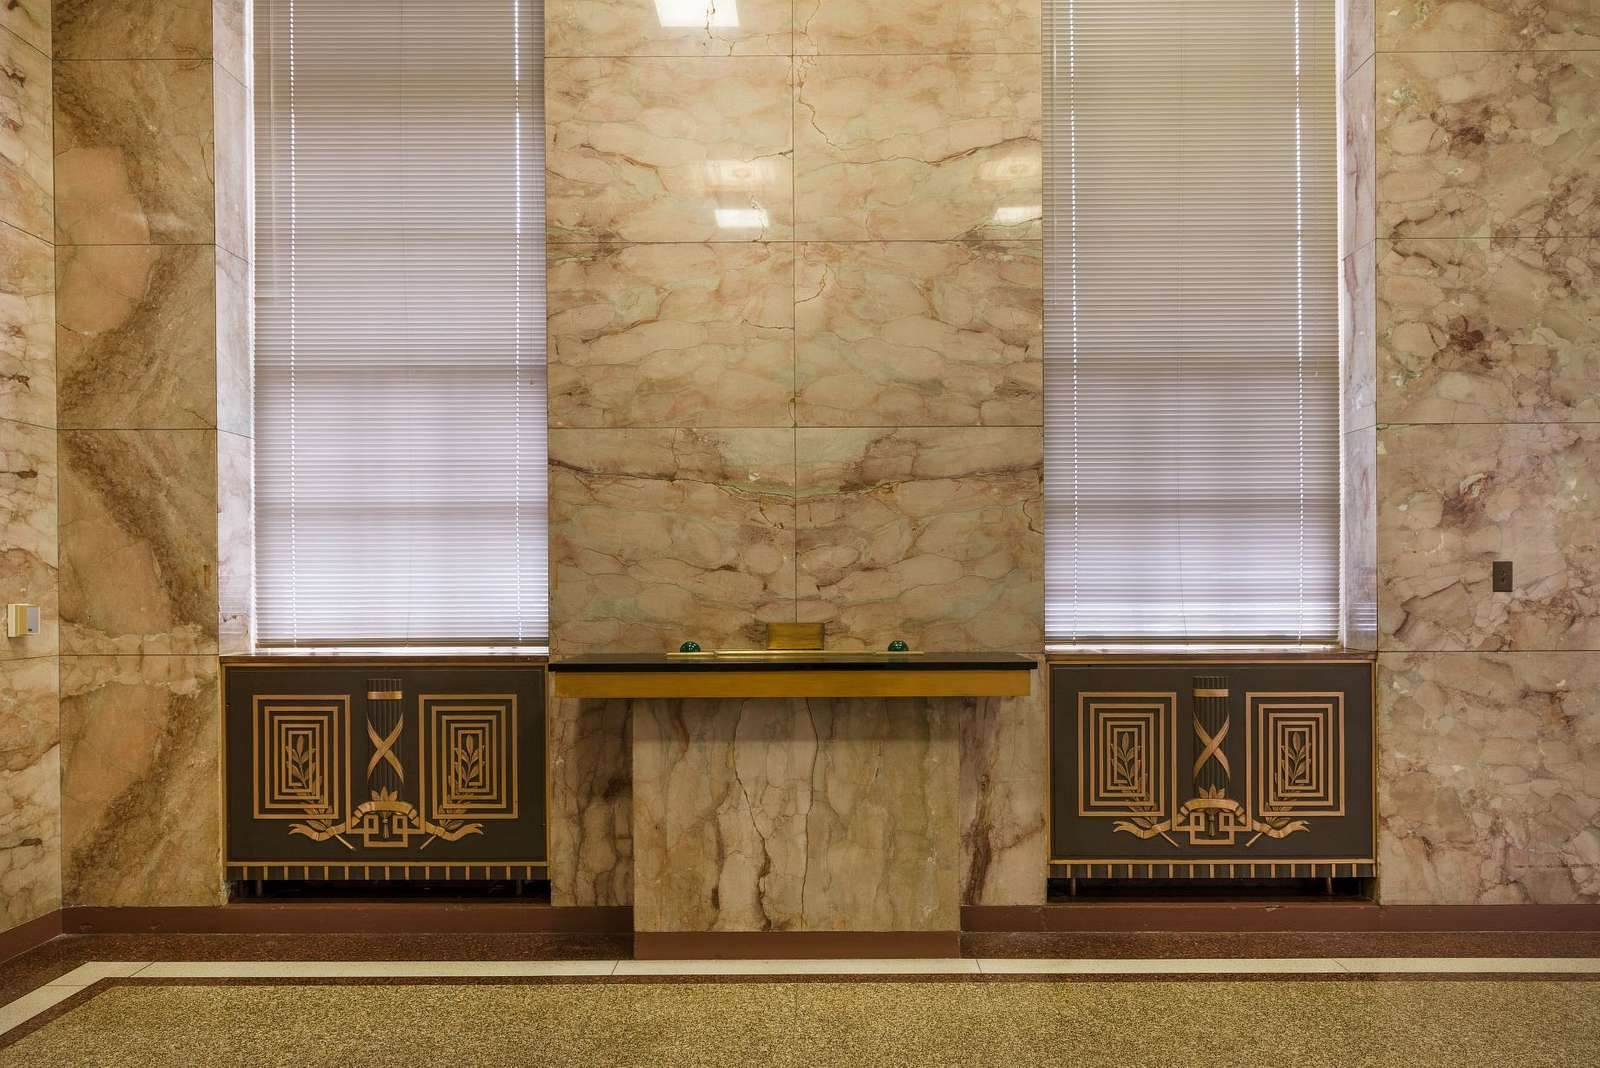 Architectural details of Lobby at the Federal Building and U.S. Court House, Peoria, Illinois